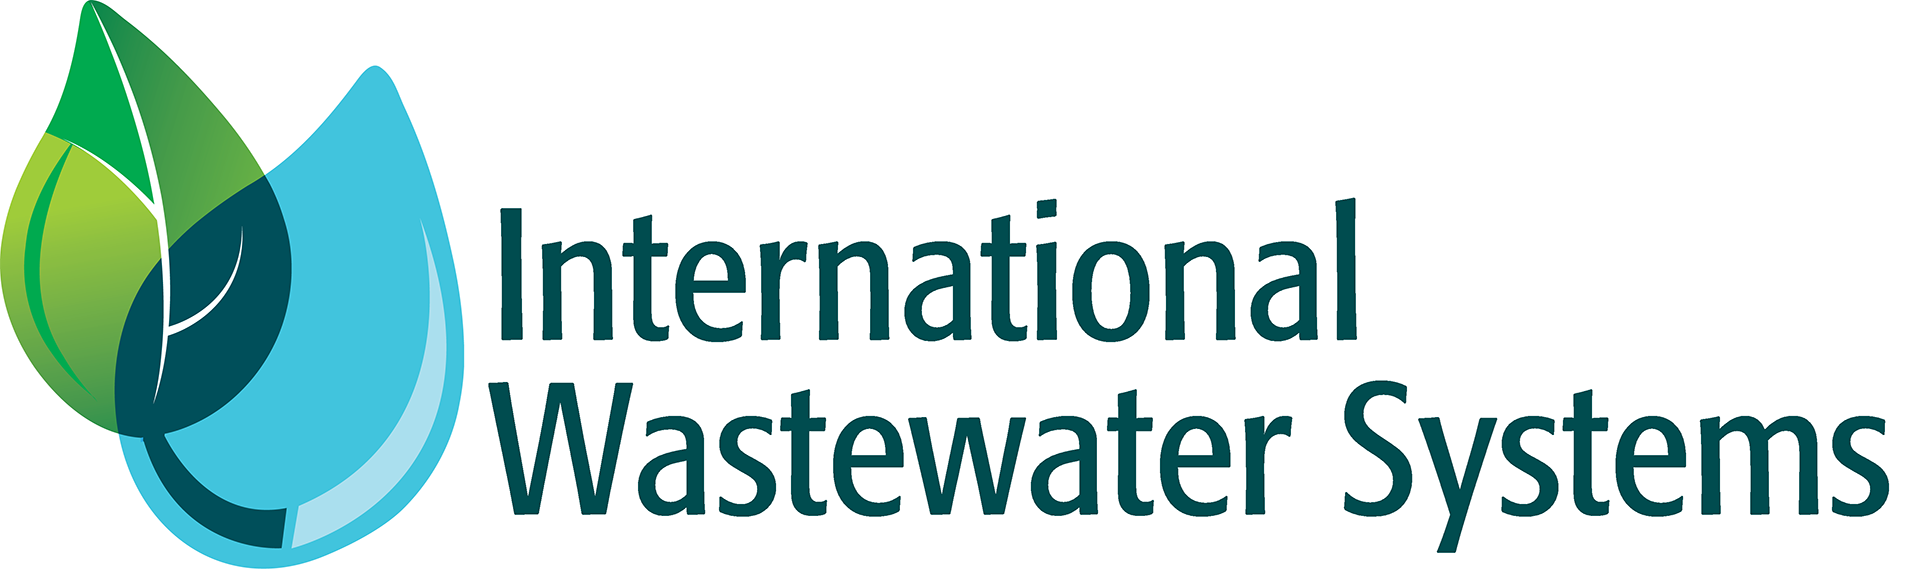 International Wastewater Systems Inc. company